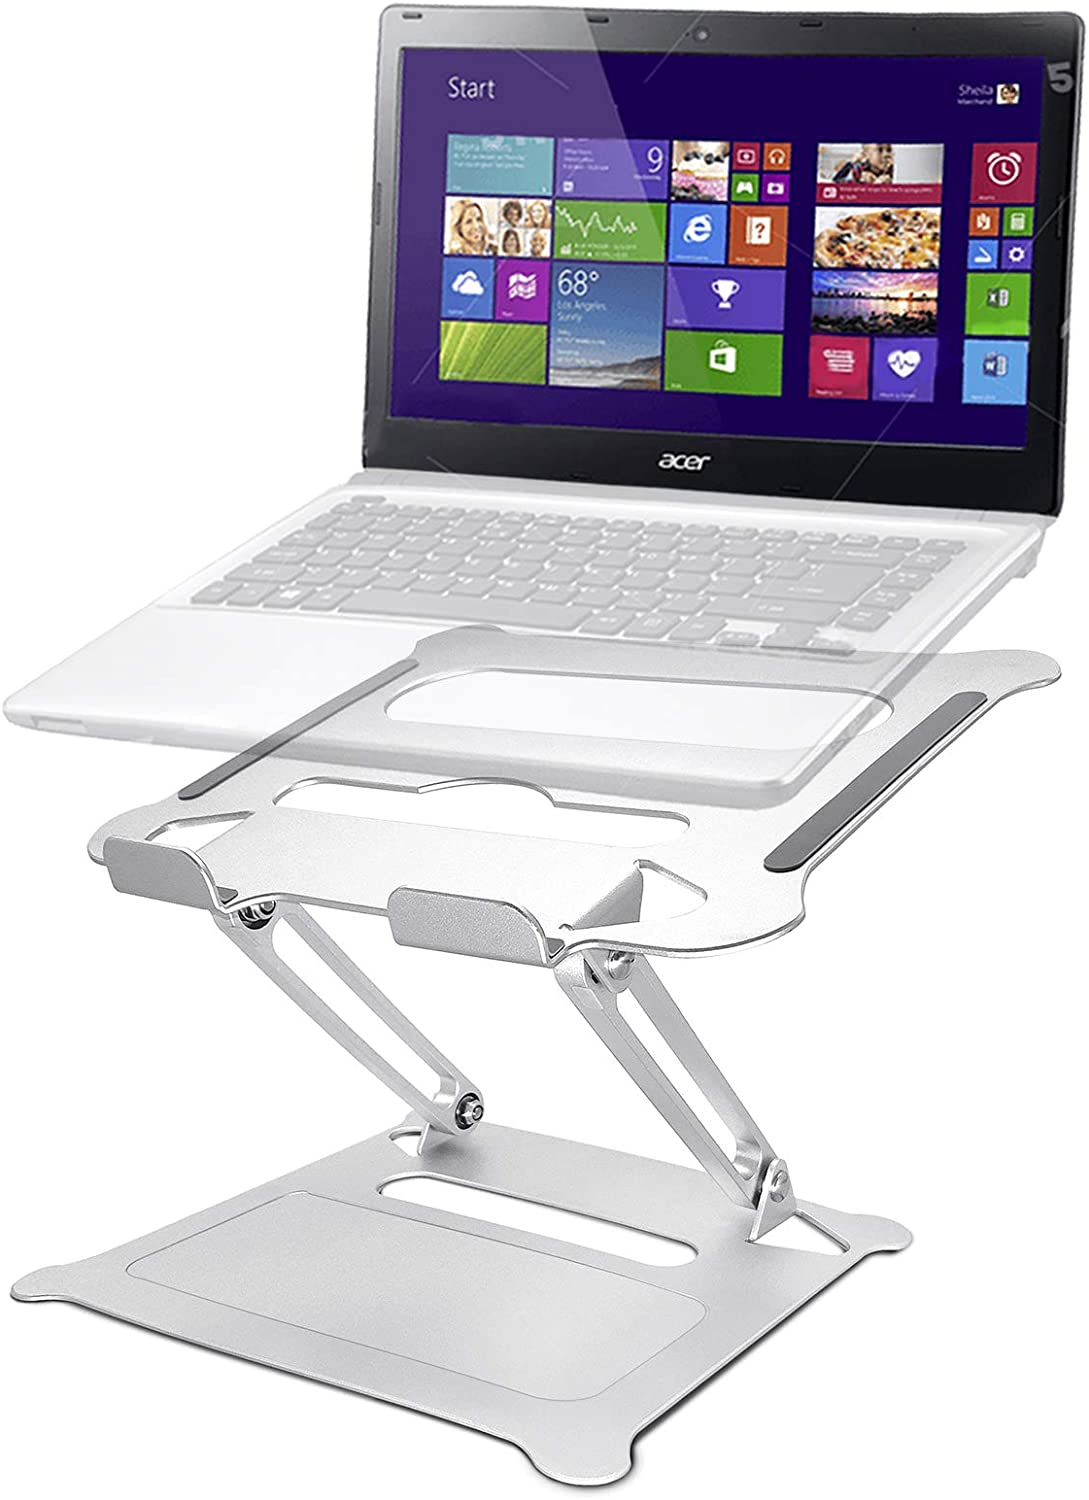 Laptop Stand, Innovaze Adjustable Laptop Riser Stand for Desk, Aluminum Portable Ergonomic Laptop Holder Adjustable Height - Compatible with up to 15.6